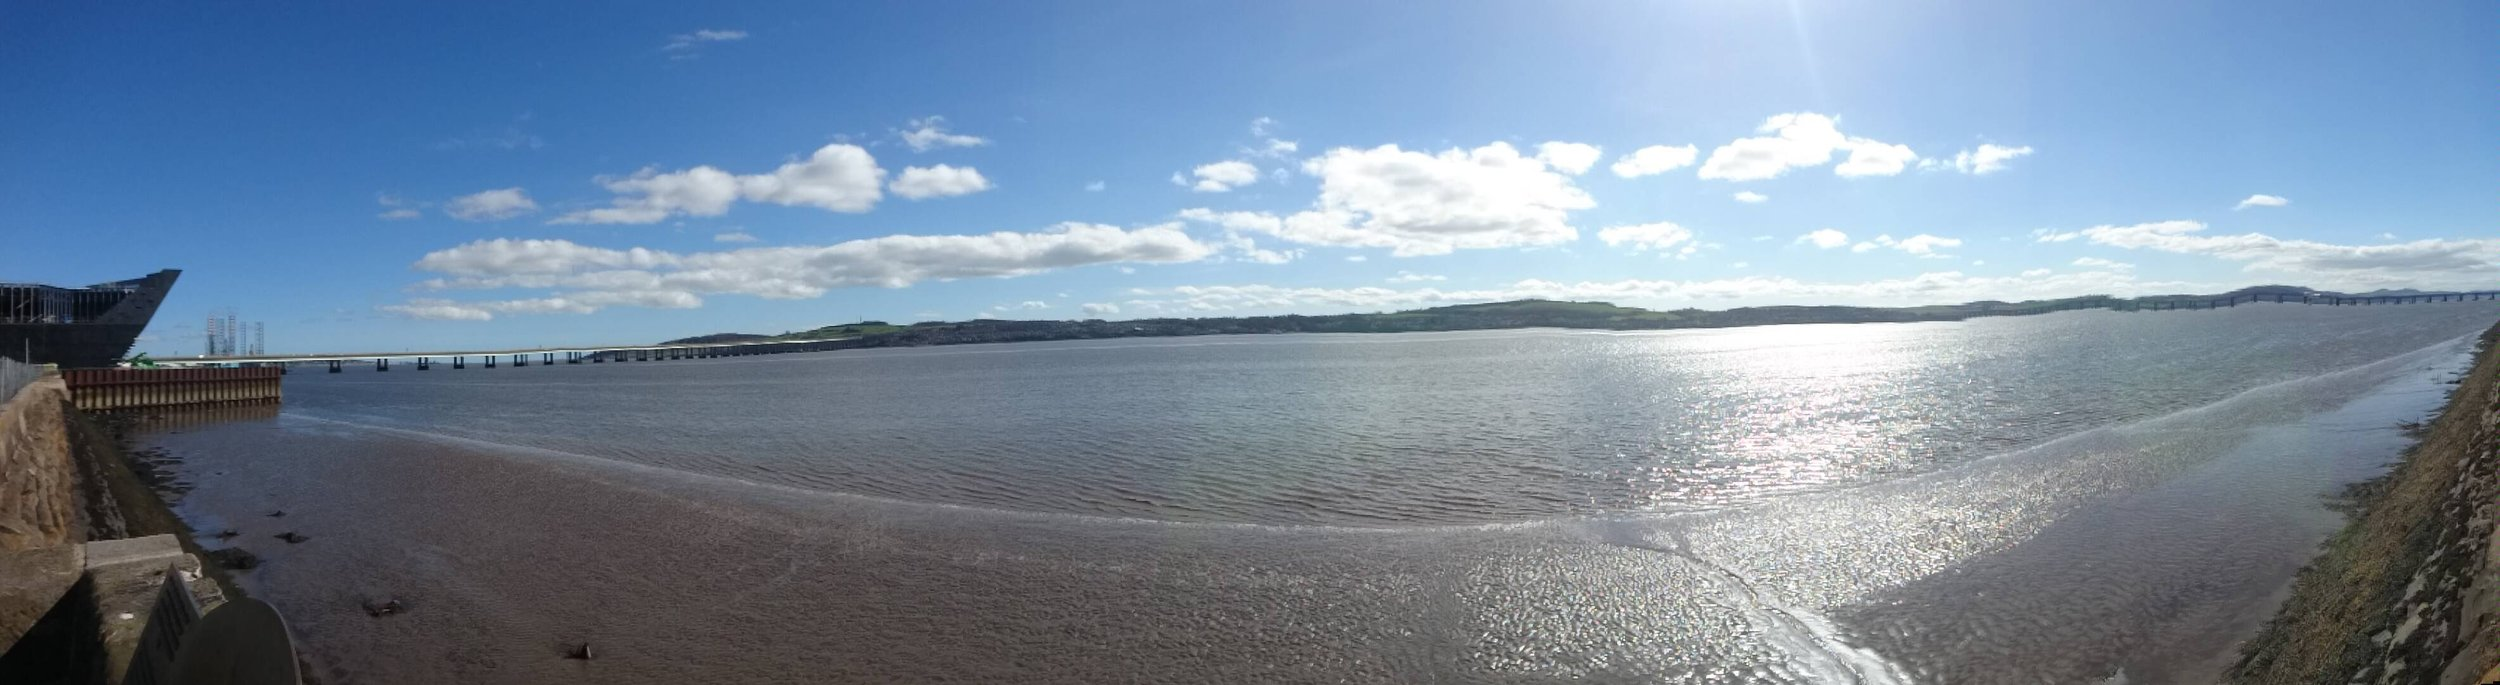 View from Dundee over the Firth of Tay / Jenny Eve